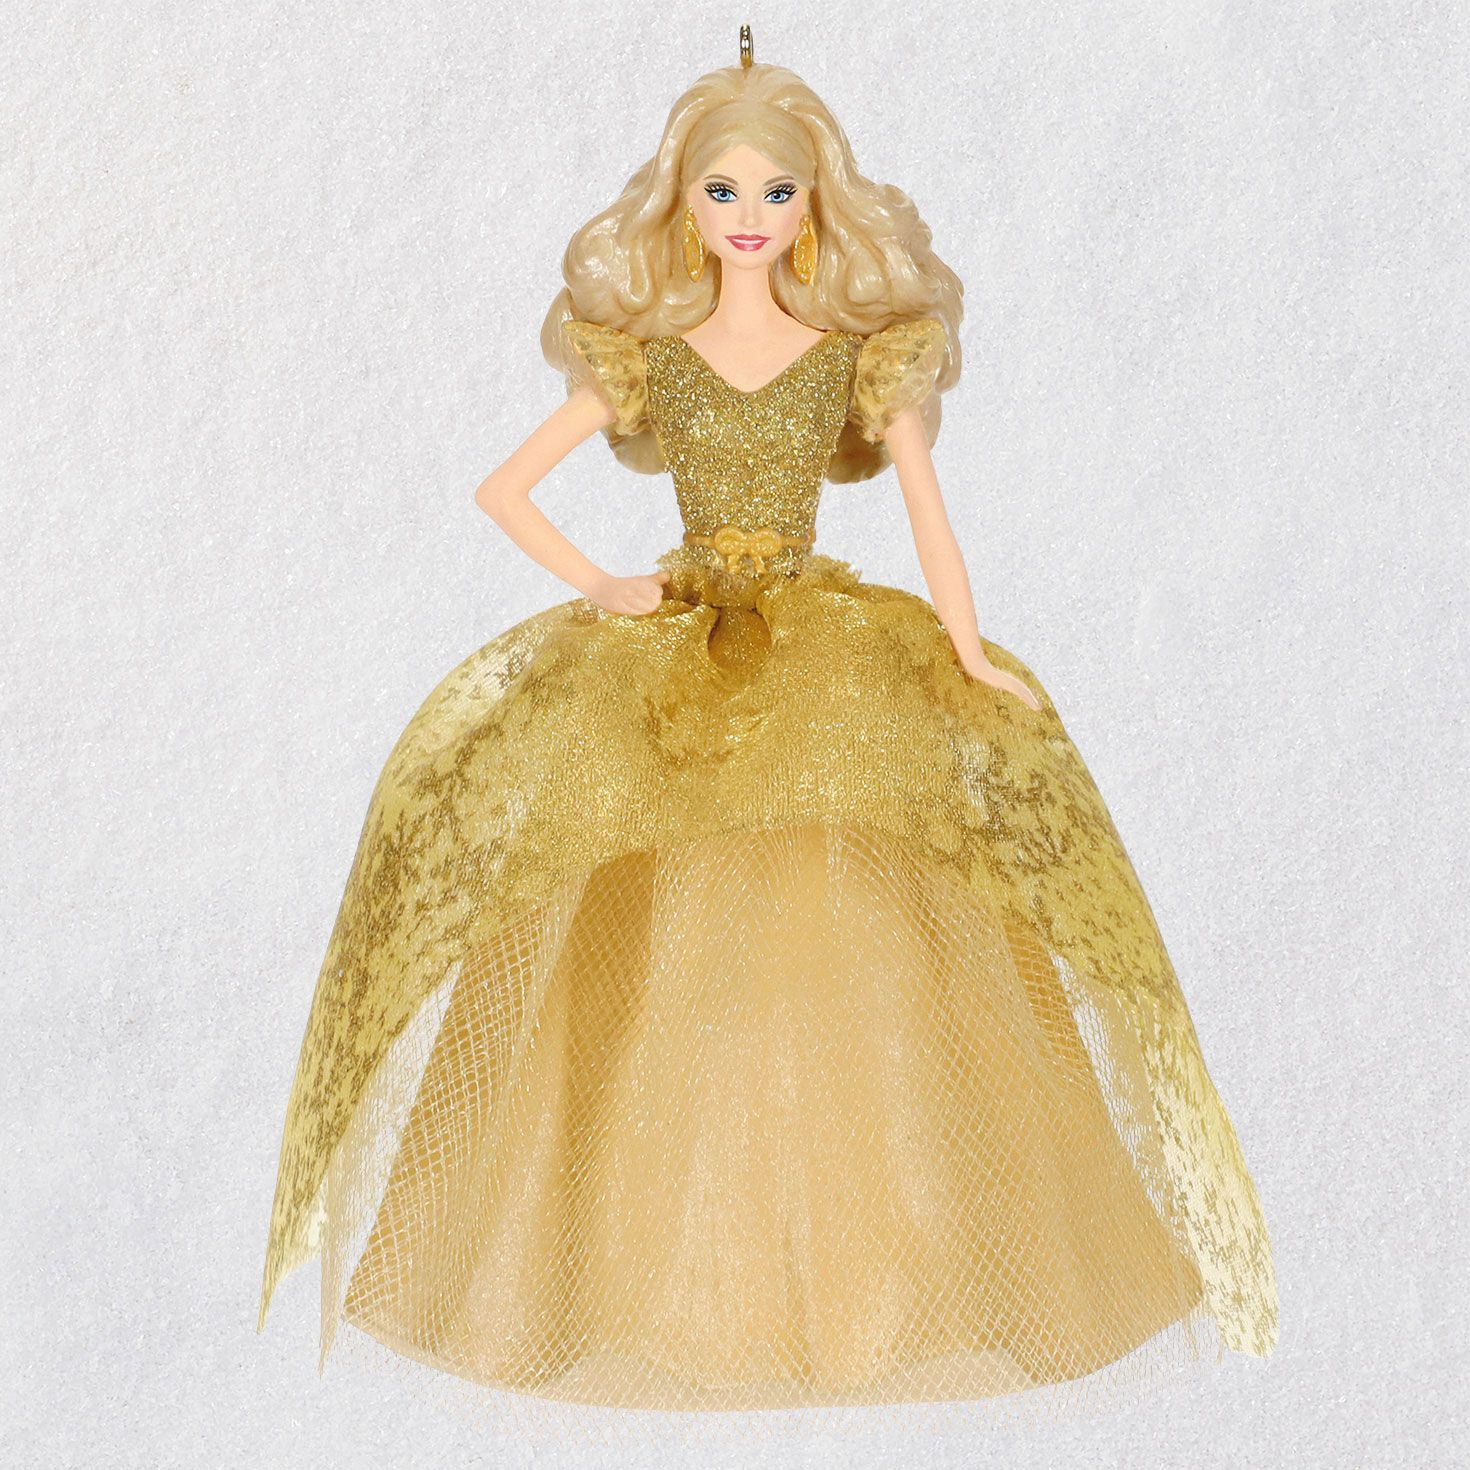 Hallmark Barbie Ornaments 2020 In 2020 Holiday Barbie Dolls Iconic Dresses Christmas Barbie